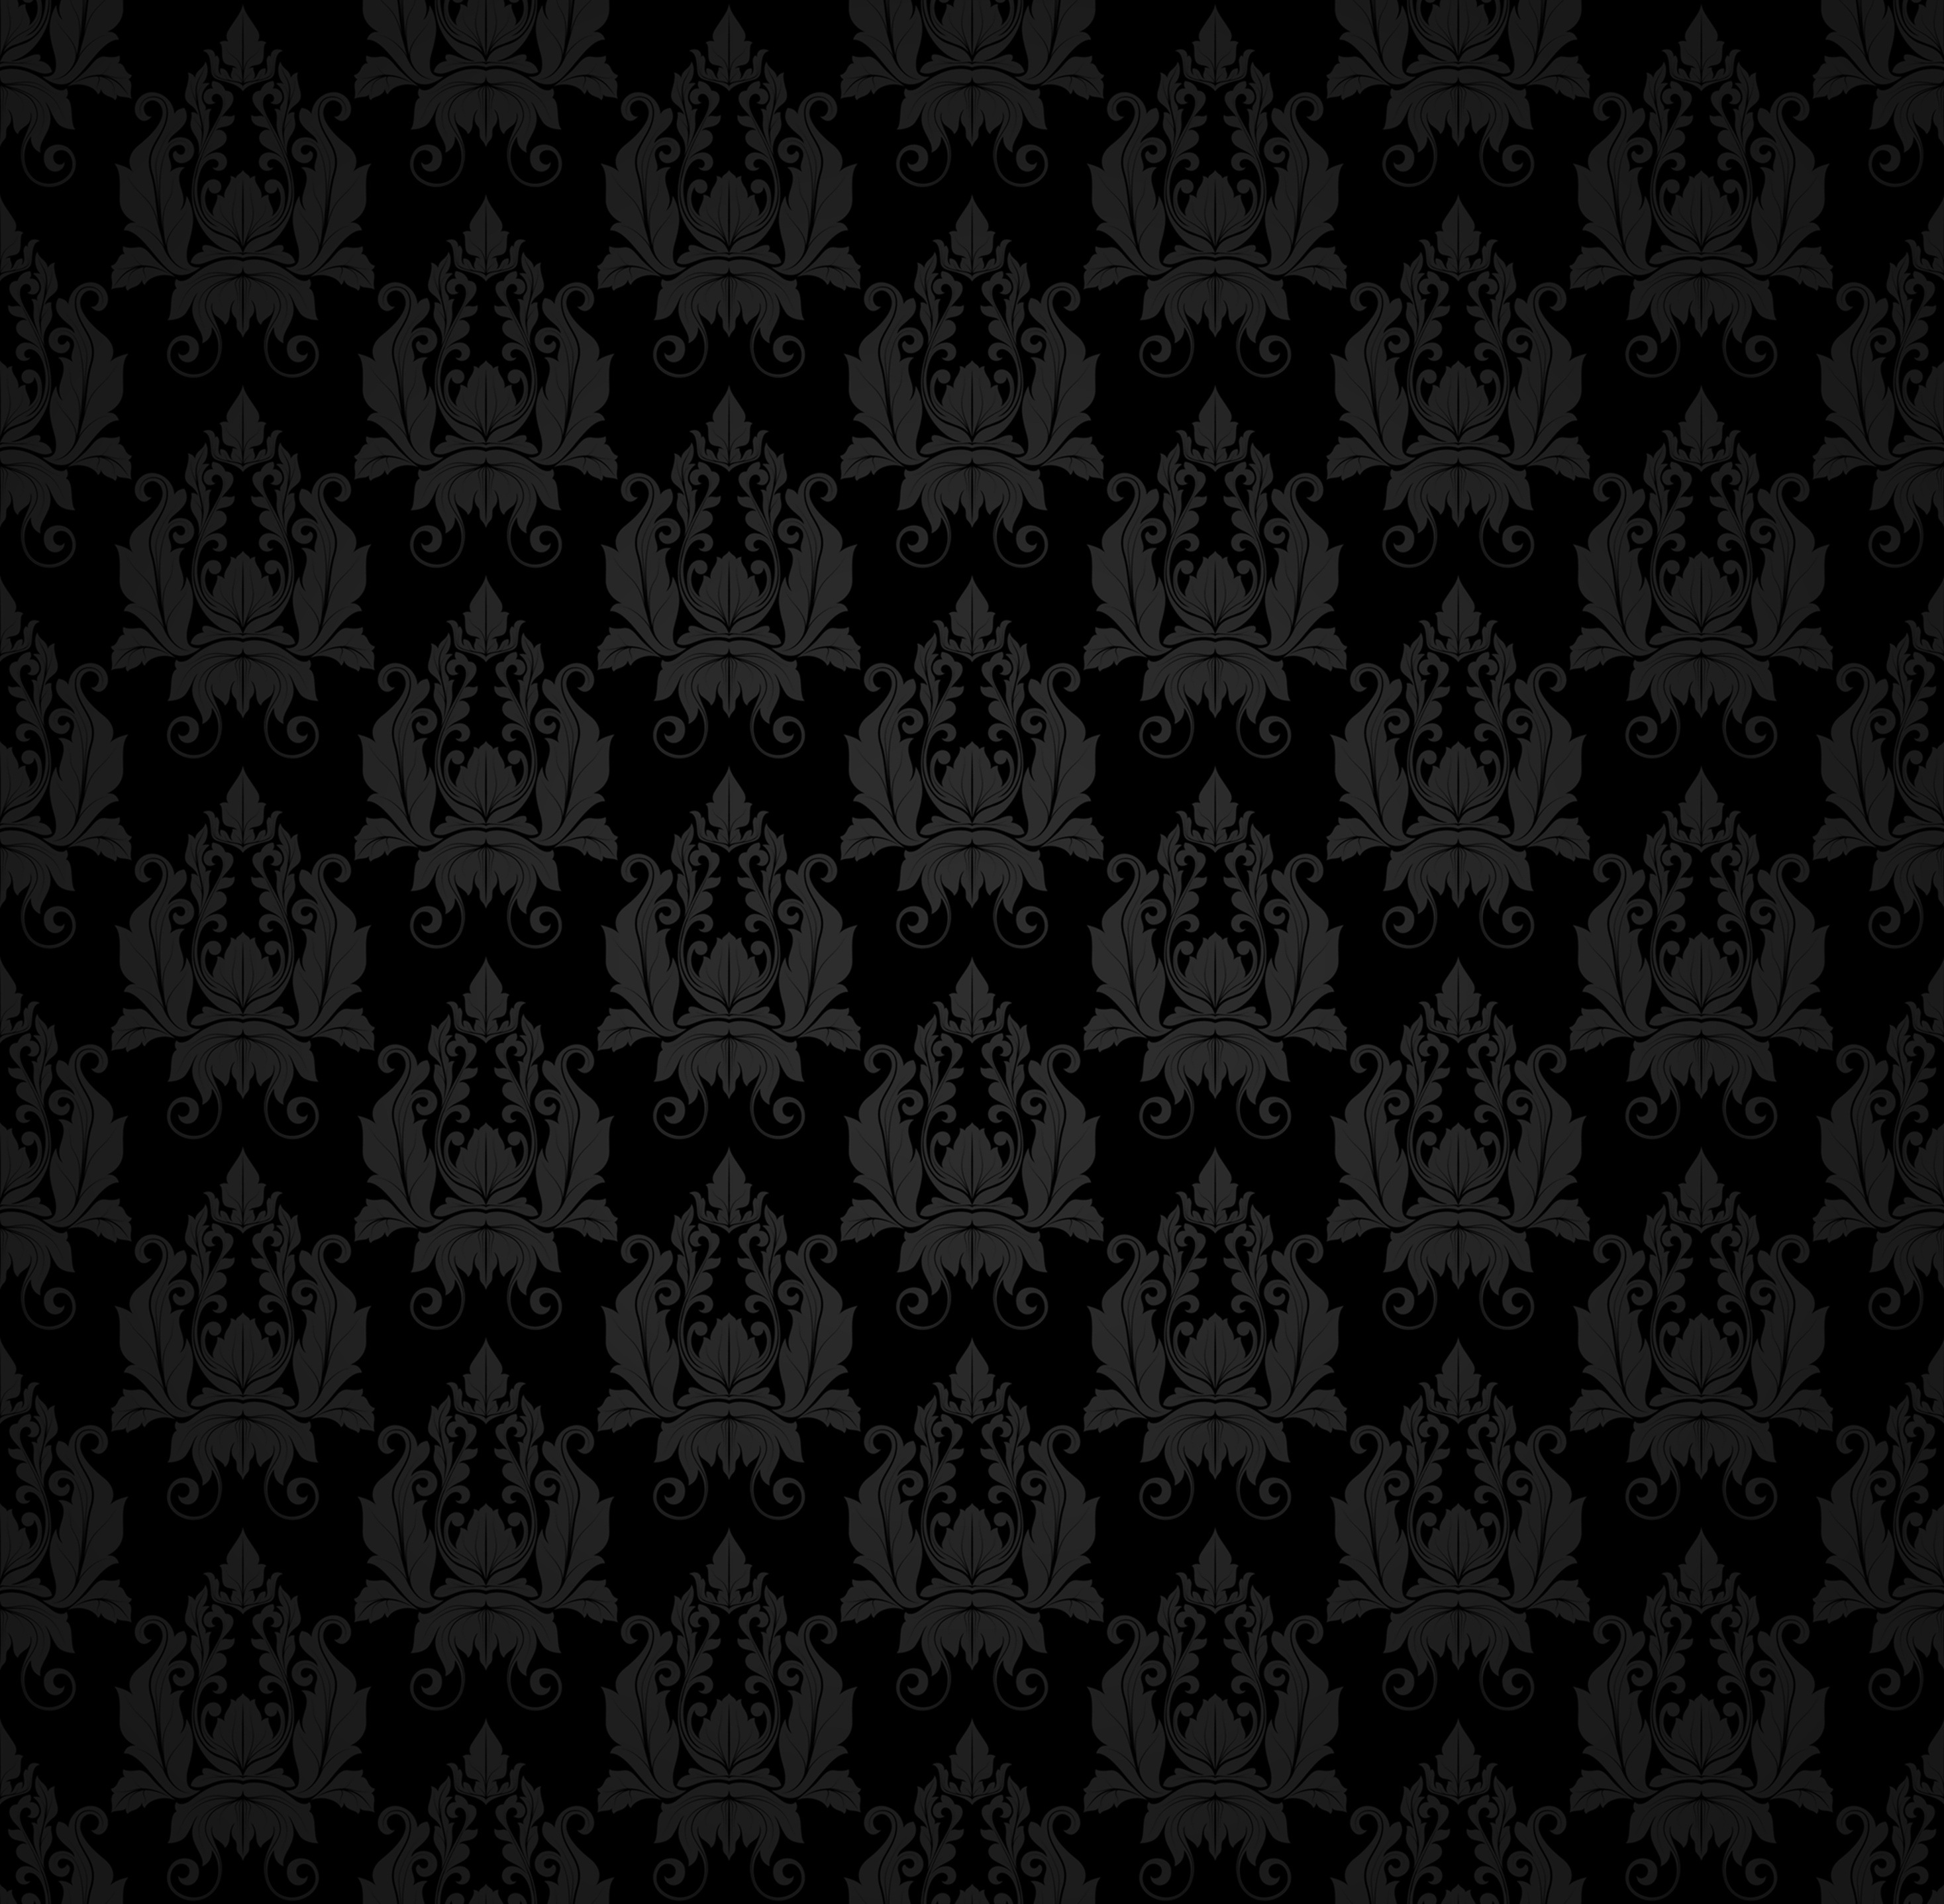 102272 download wallpaper Textures, Texture, Decoration, Retro, Patterns screensavers and pictures for free